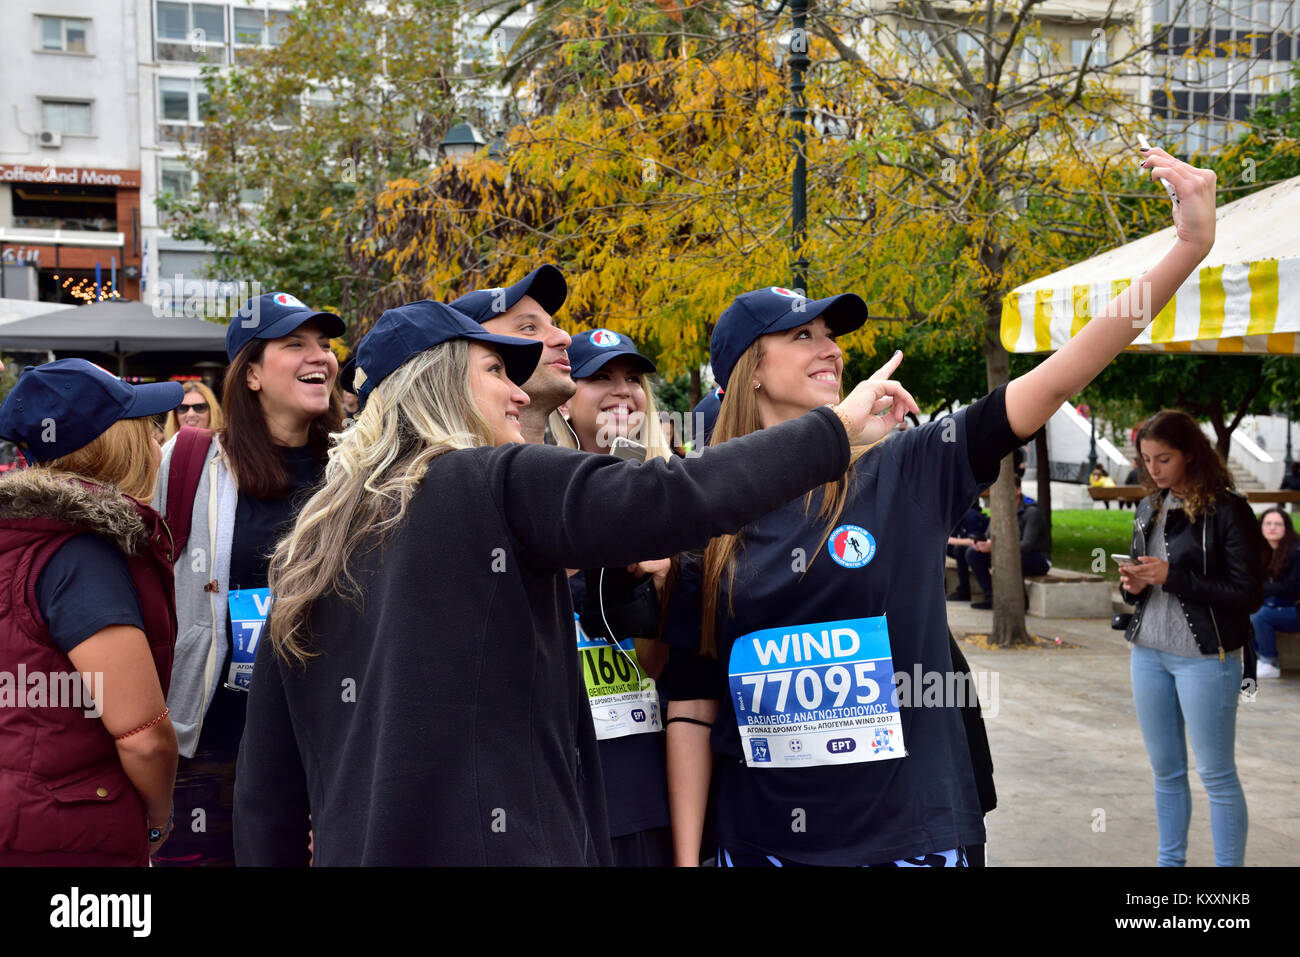 Women runners who will take part in Athens Authentic Marathon race latter in day taking selfie photo - Stock Image